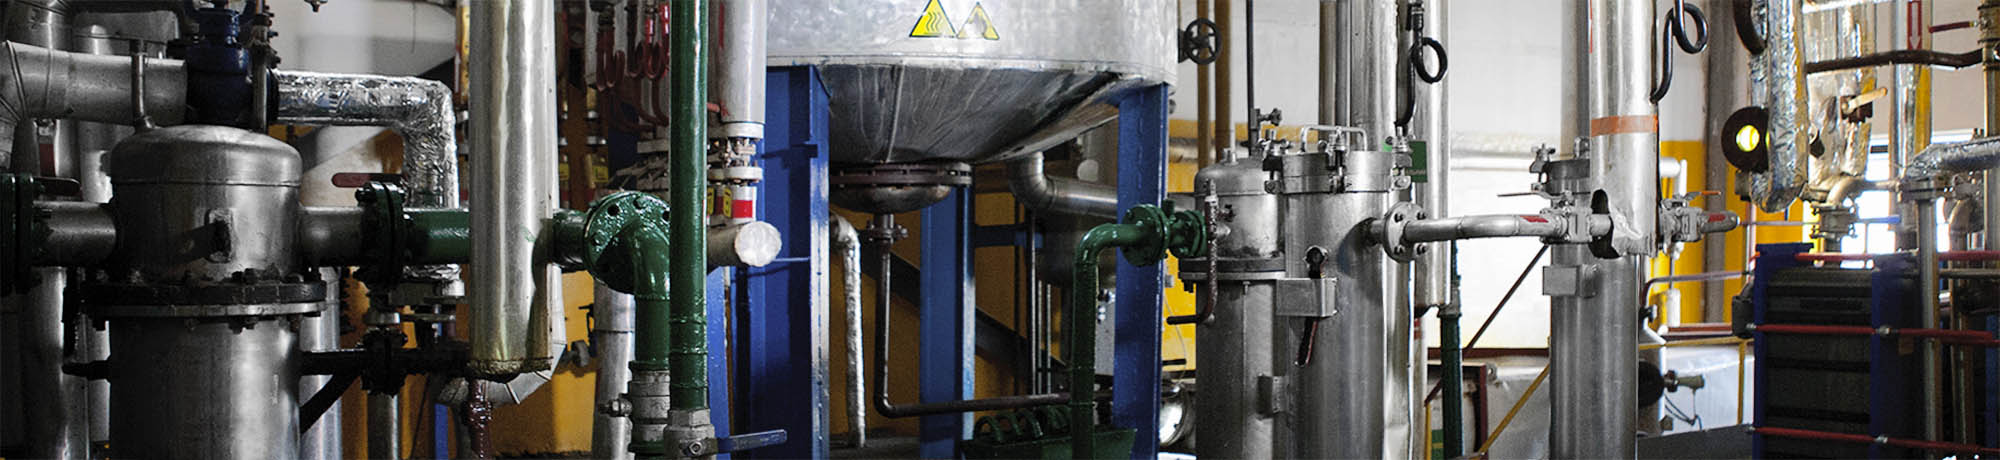 Processing factory of oil (PFO)